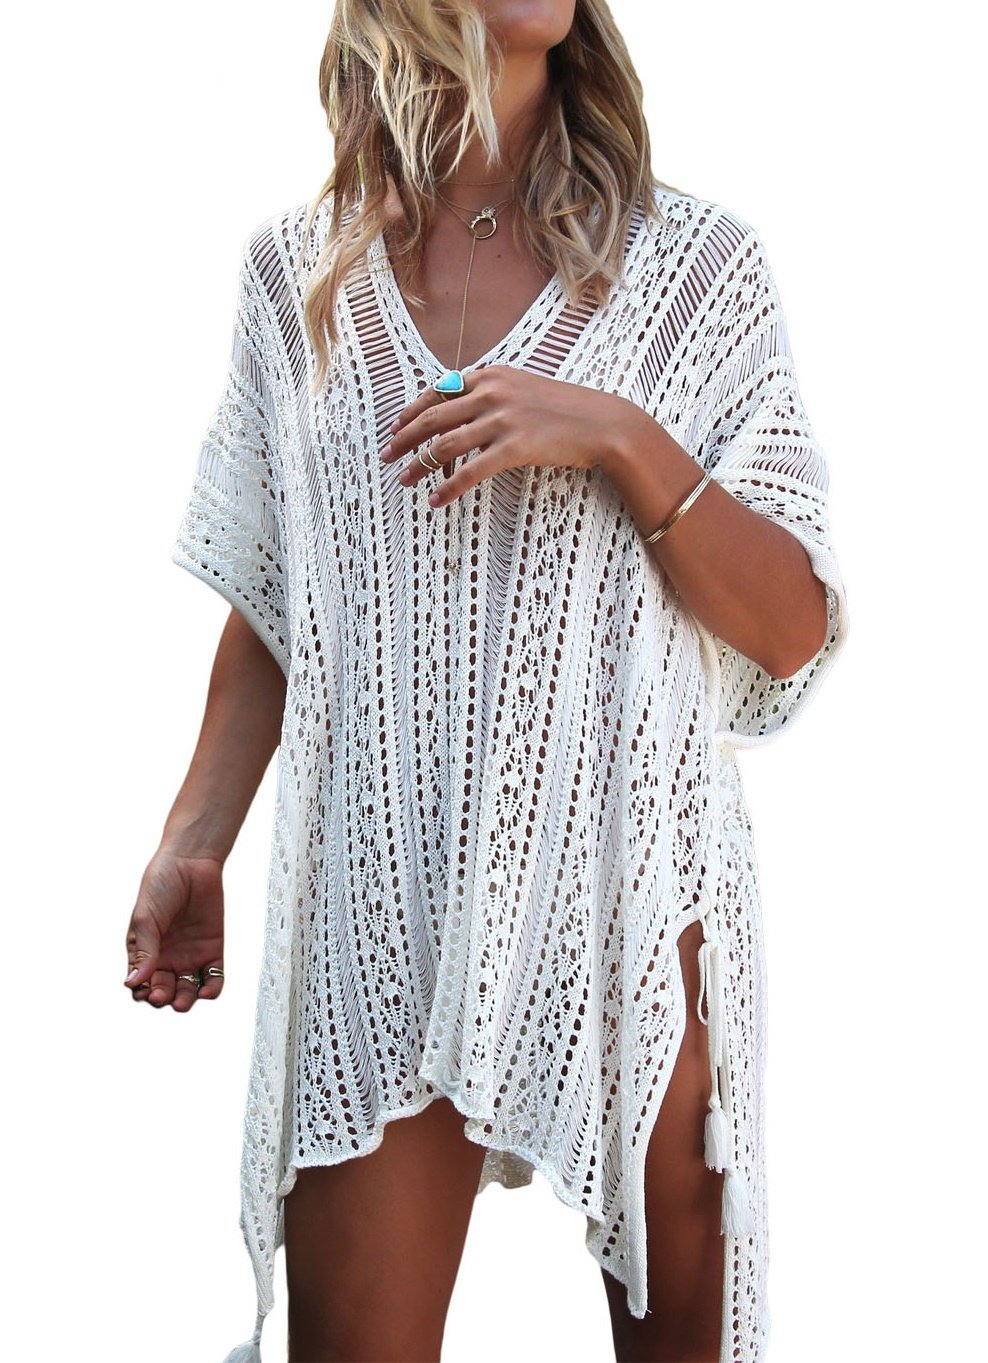 Lealac Women's Summer Cotton Bathing Suit Cover Up Beach Bikini Swimsuit Swimwear Crochet Dress Gift For Women LXF13 White